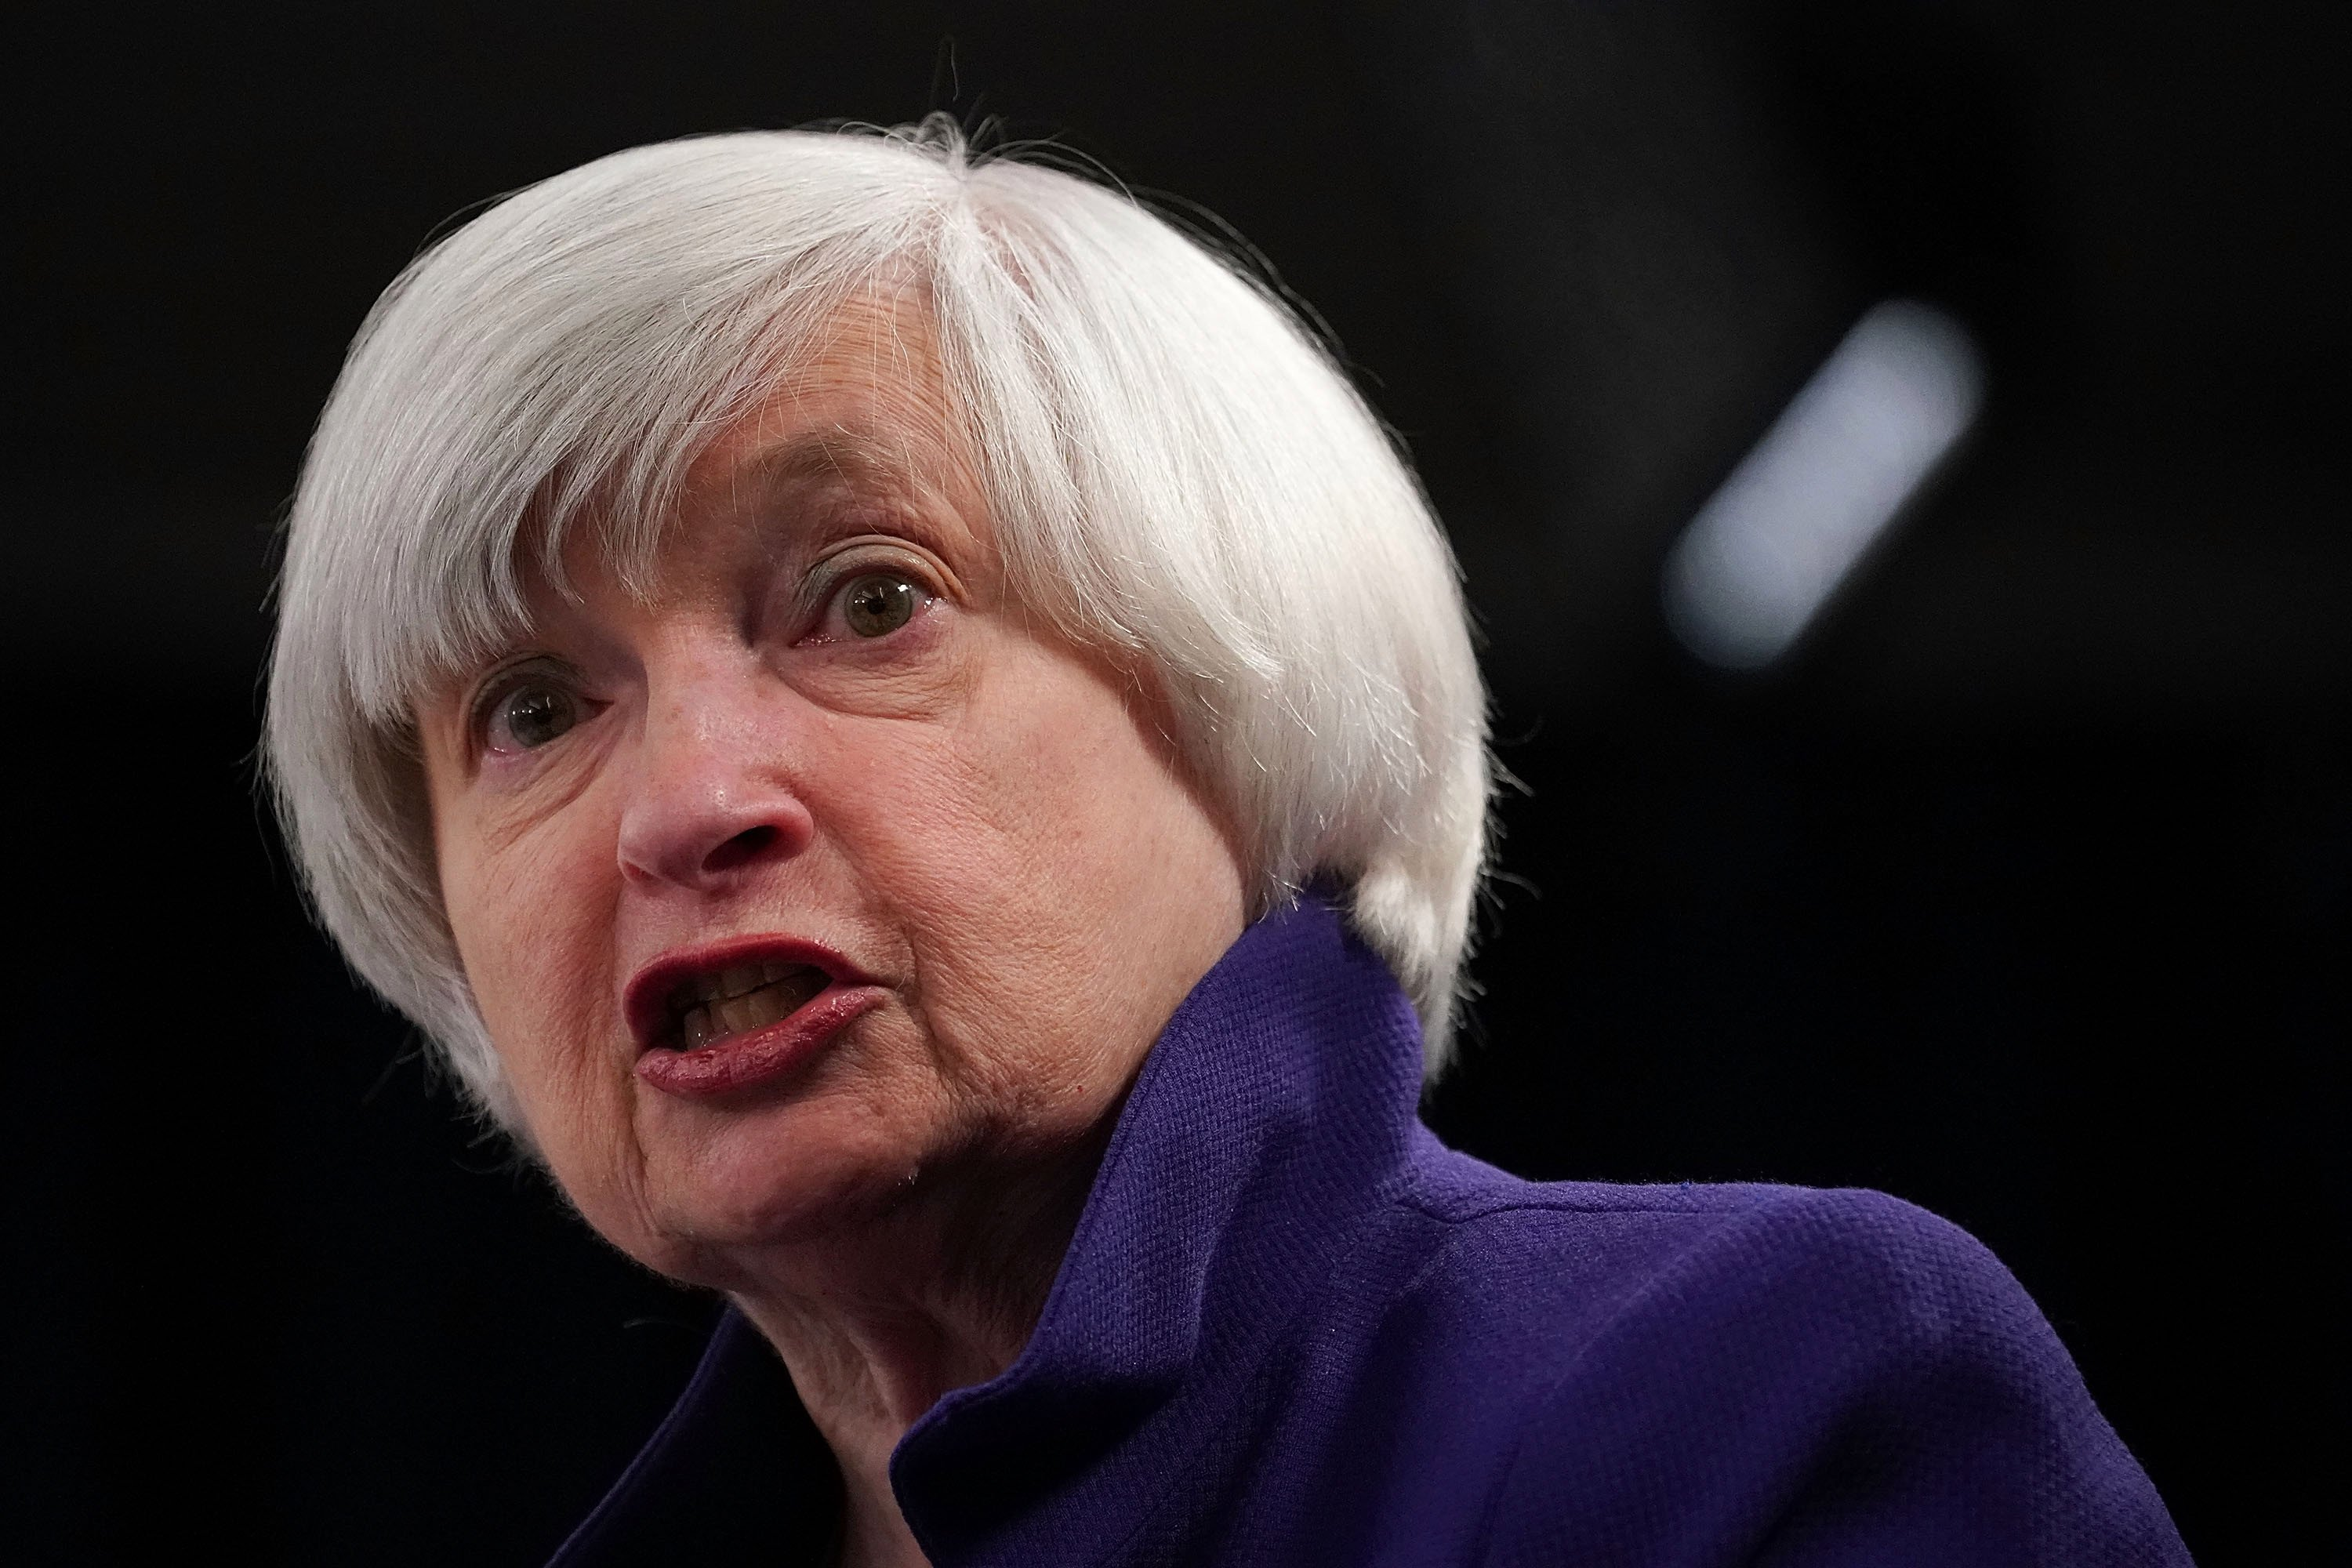 Yellen fears bubble as stock market sees sharp decline